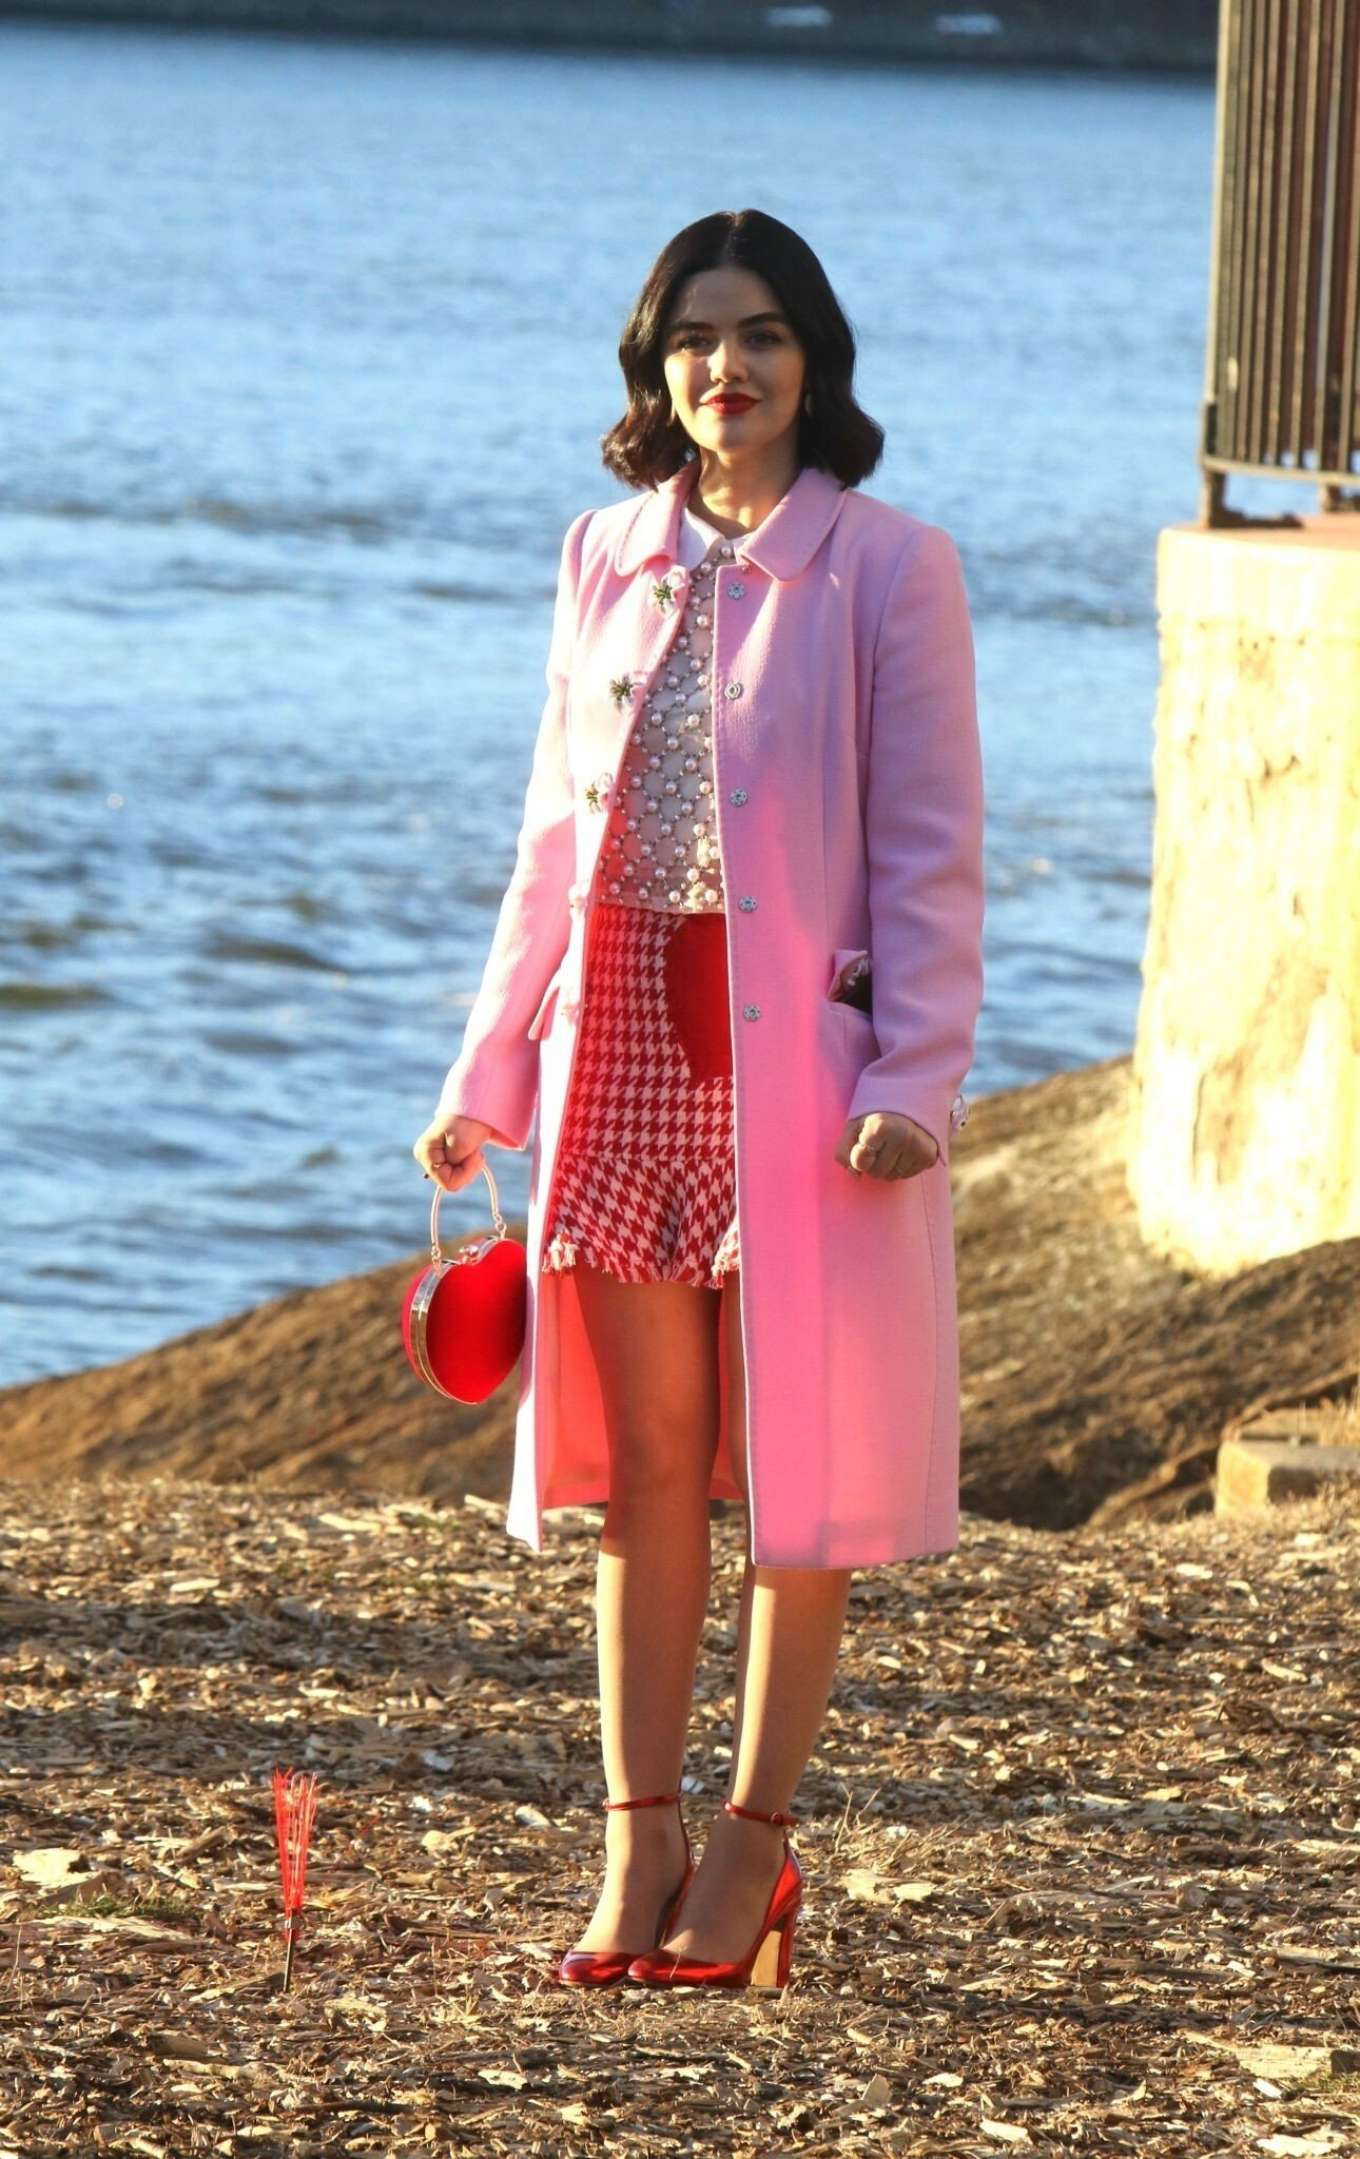 Lucy Hale - On the set 'Katy Keene' in New York City